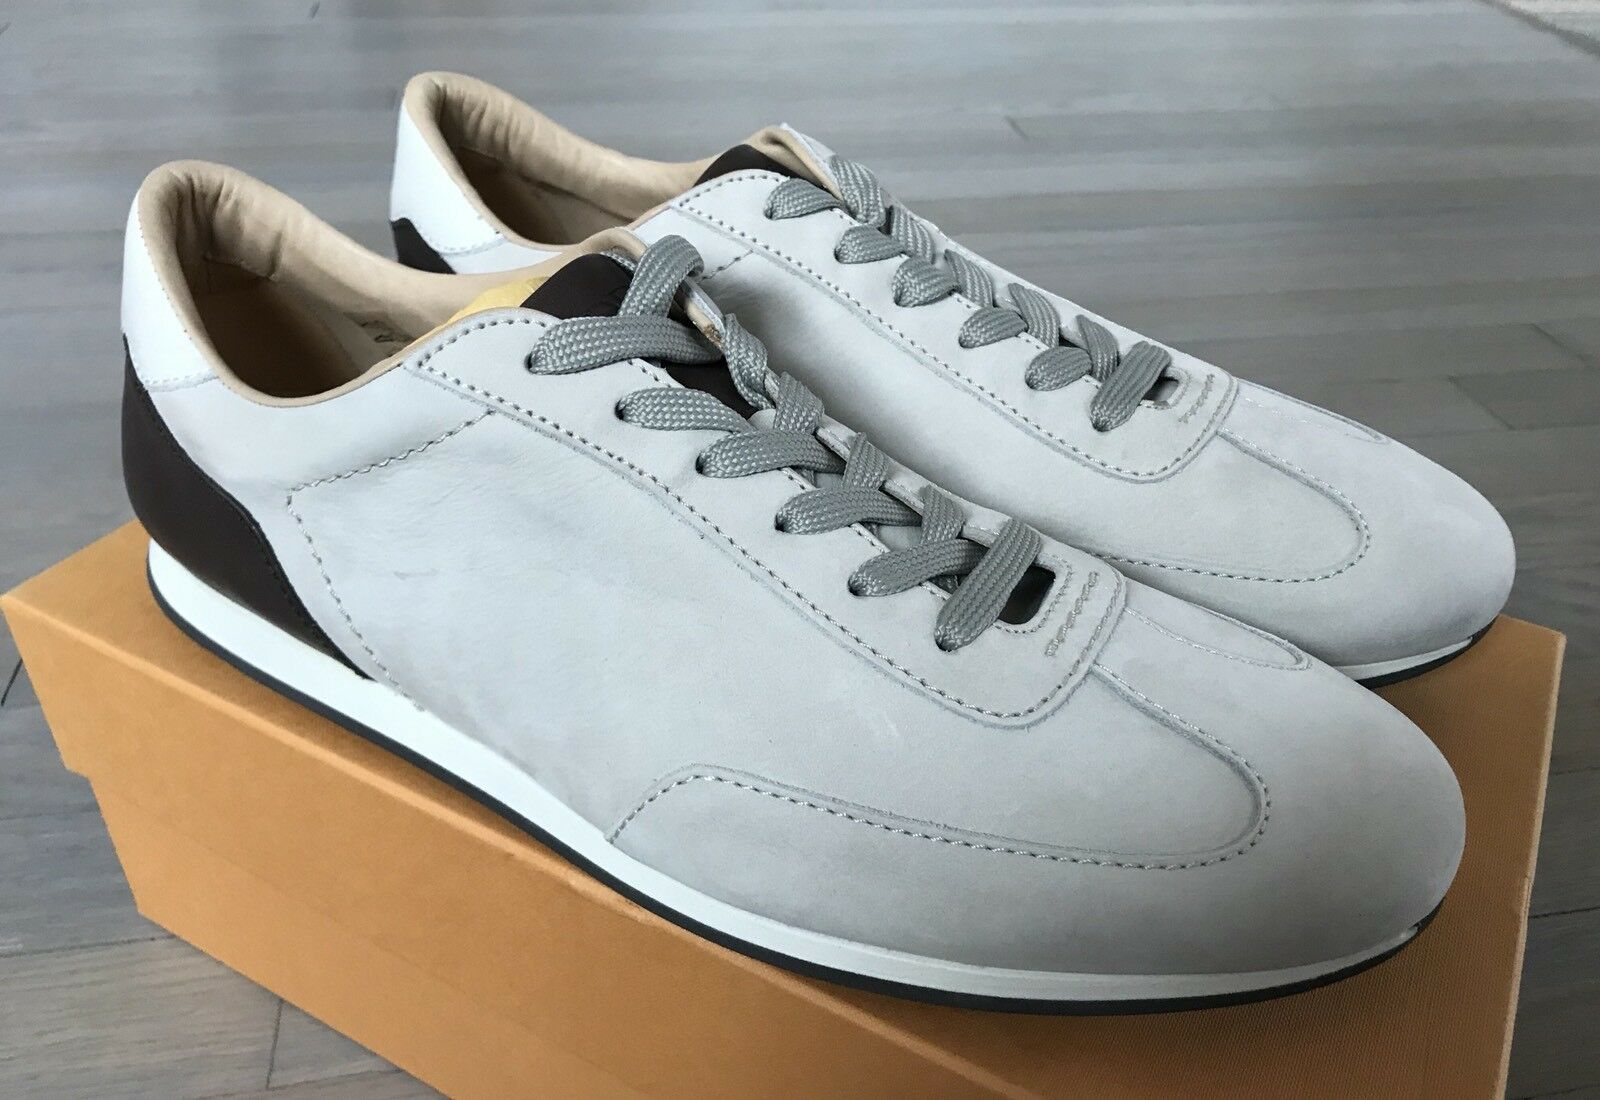 550 Tod's Light Stone Suede Allacciato Sneakers size US 12 Made in Italy